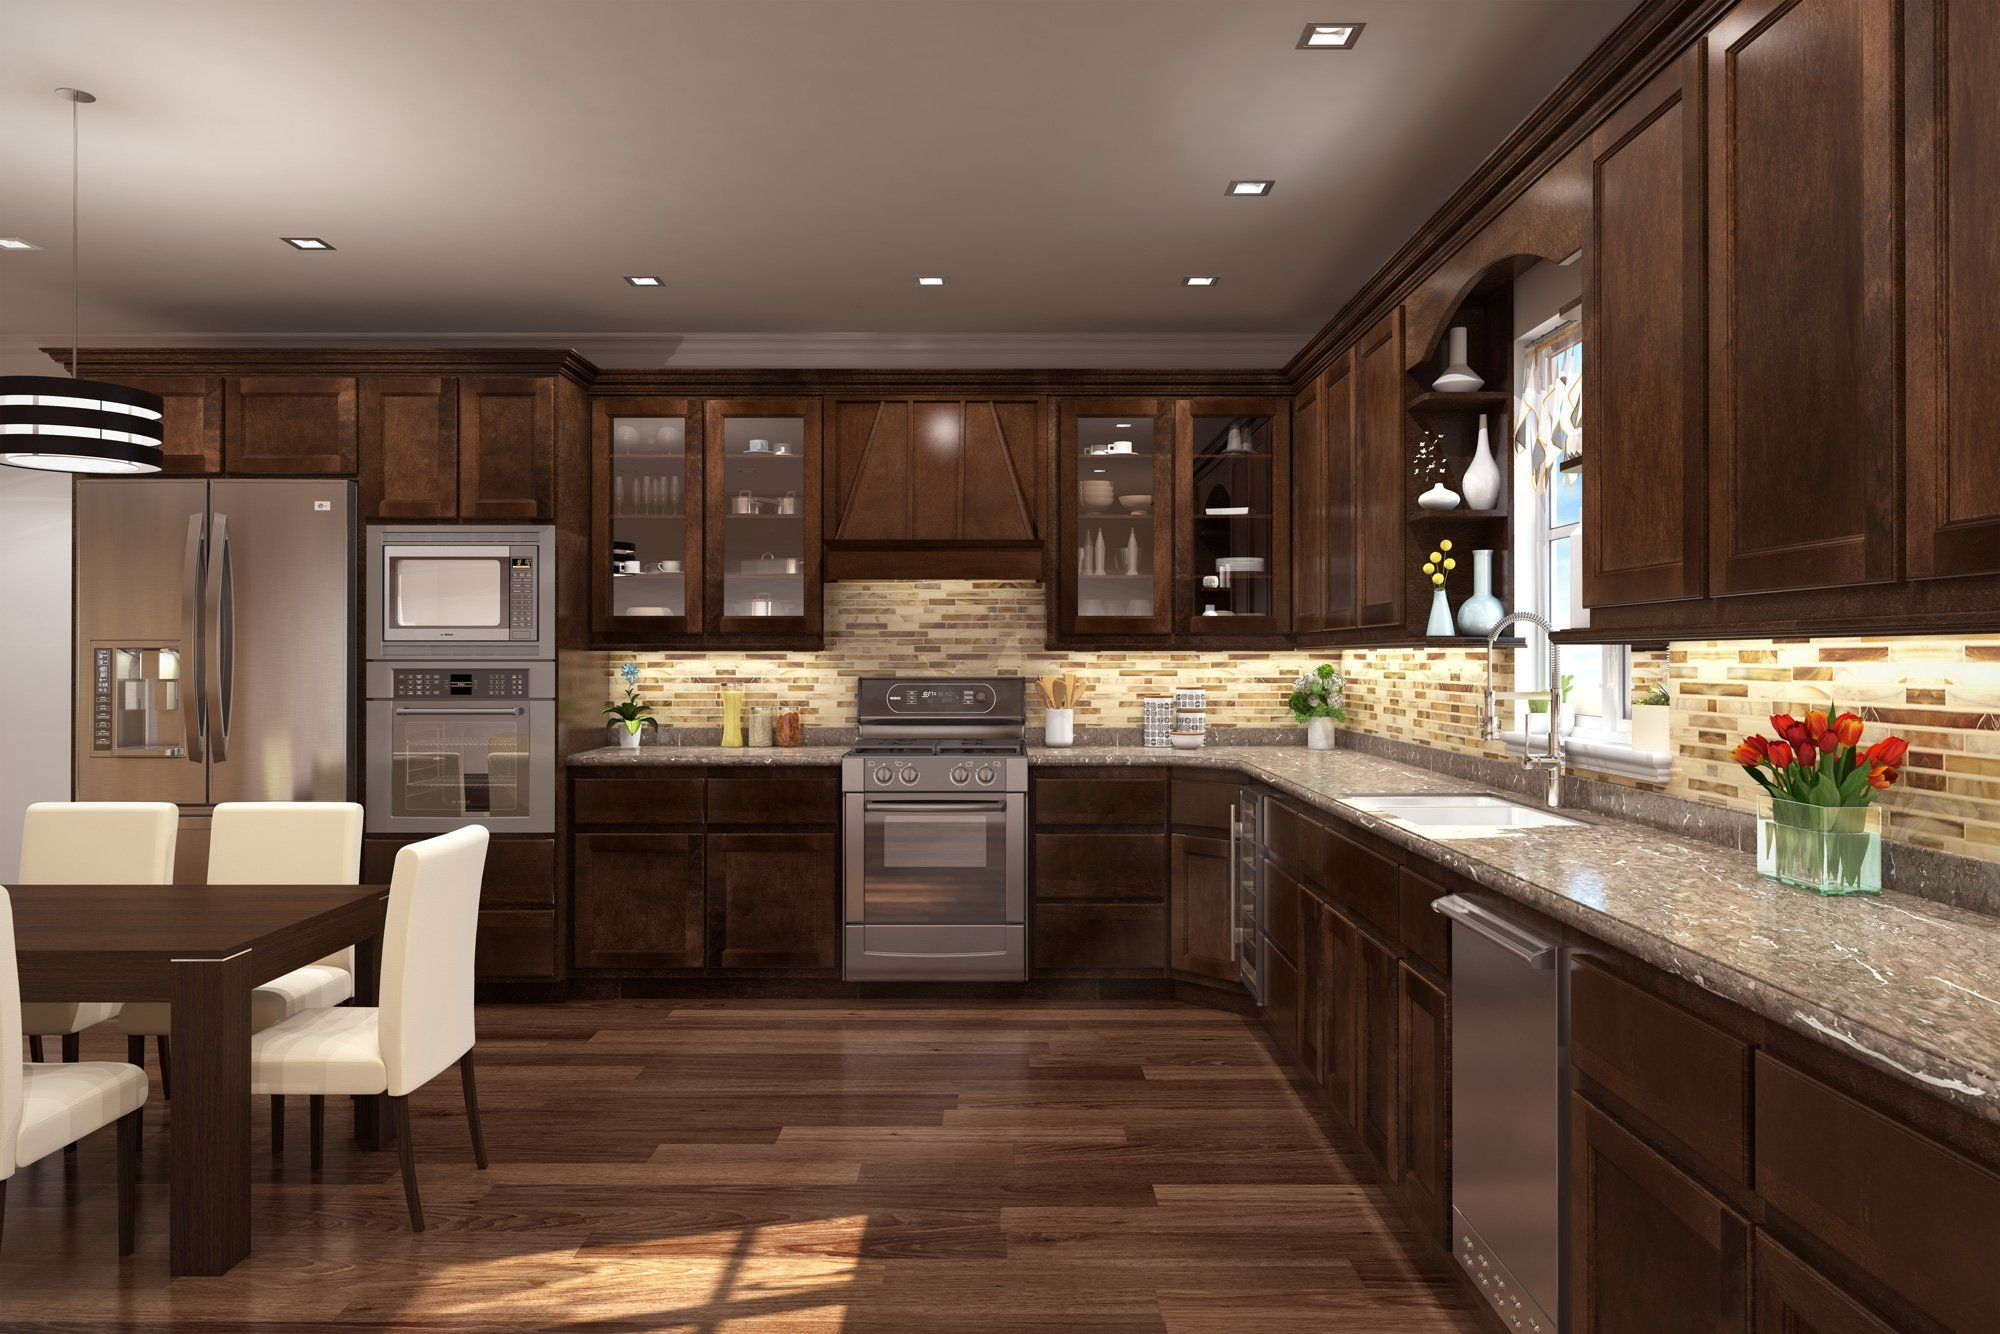 Ridgewood Cubiccino Kitchen Cabinets From Cubitaccabinetry Basic Series Feature A Simple A Traditional Kitchen Cabinets Kitchen Cabinets Best Kitchen Cabinets